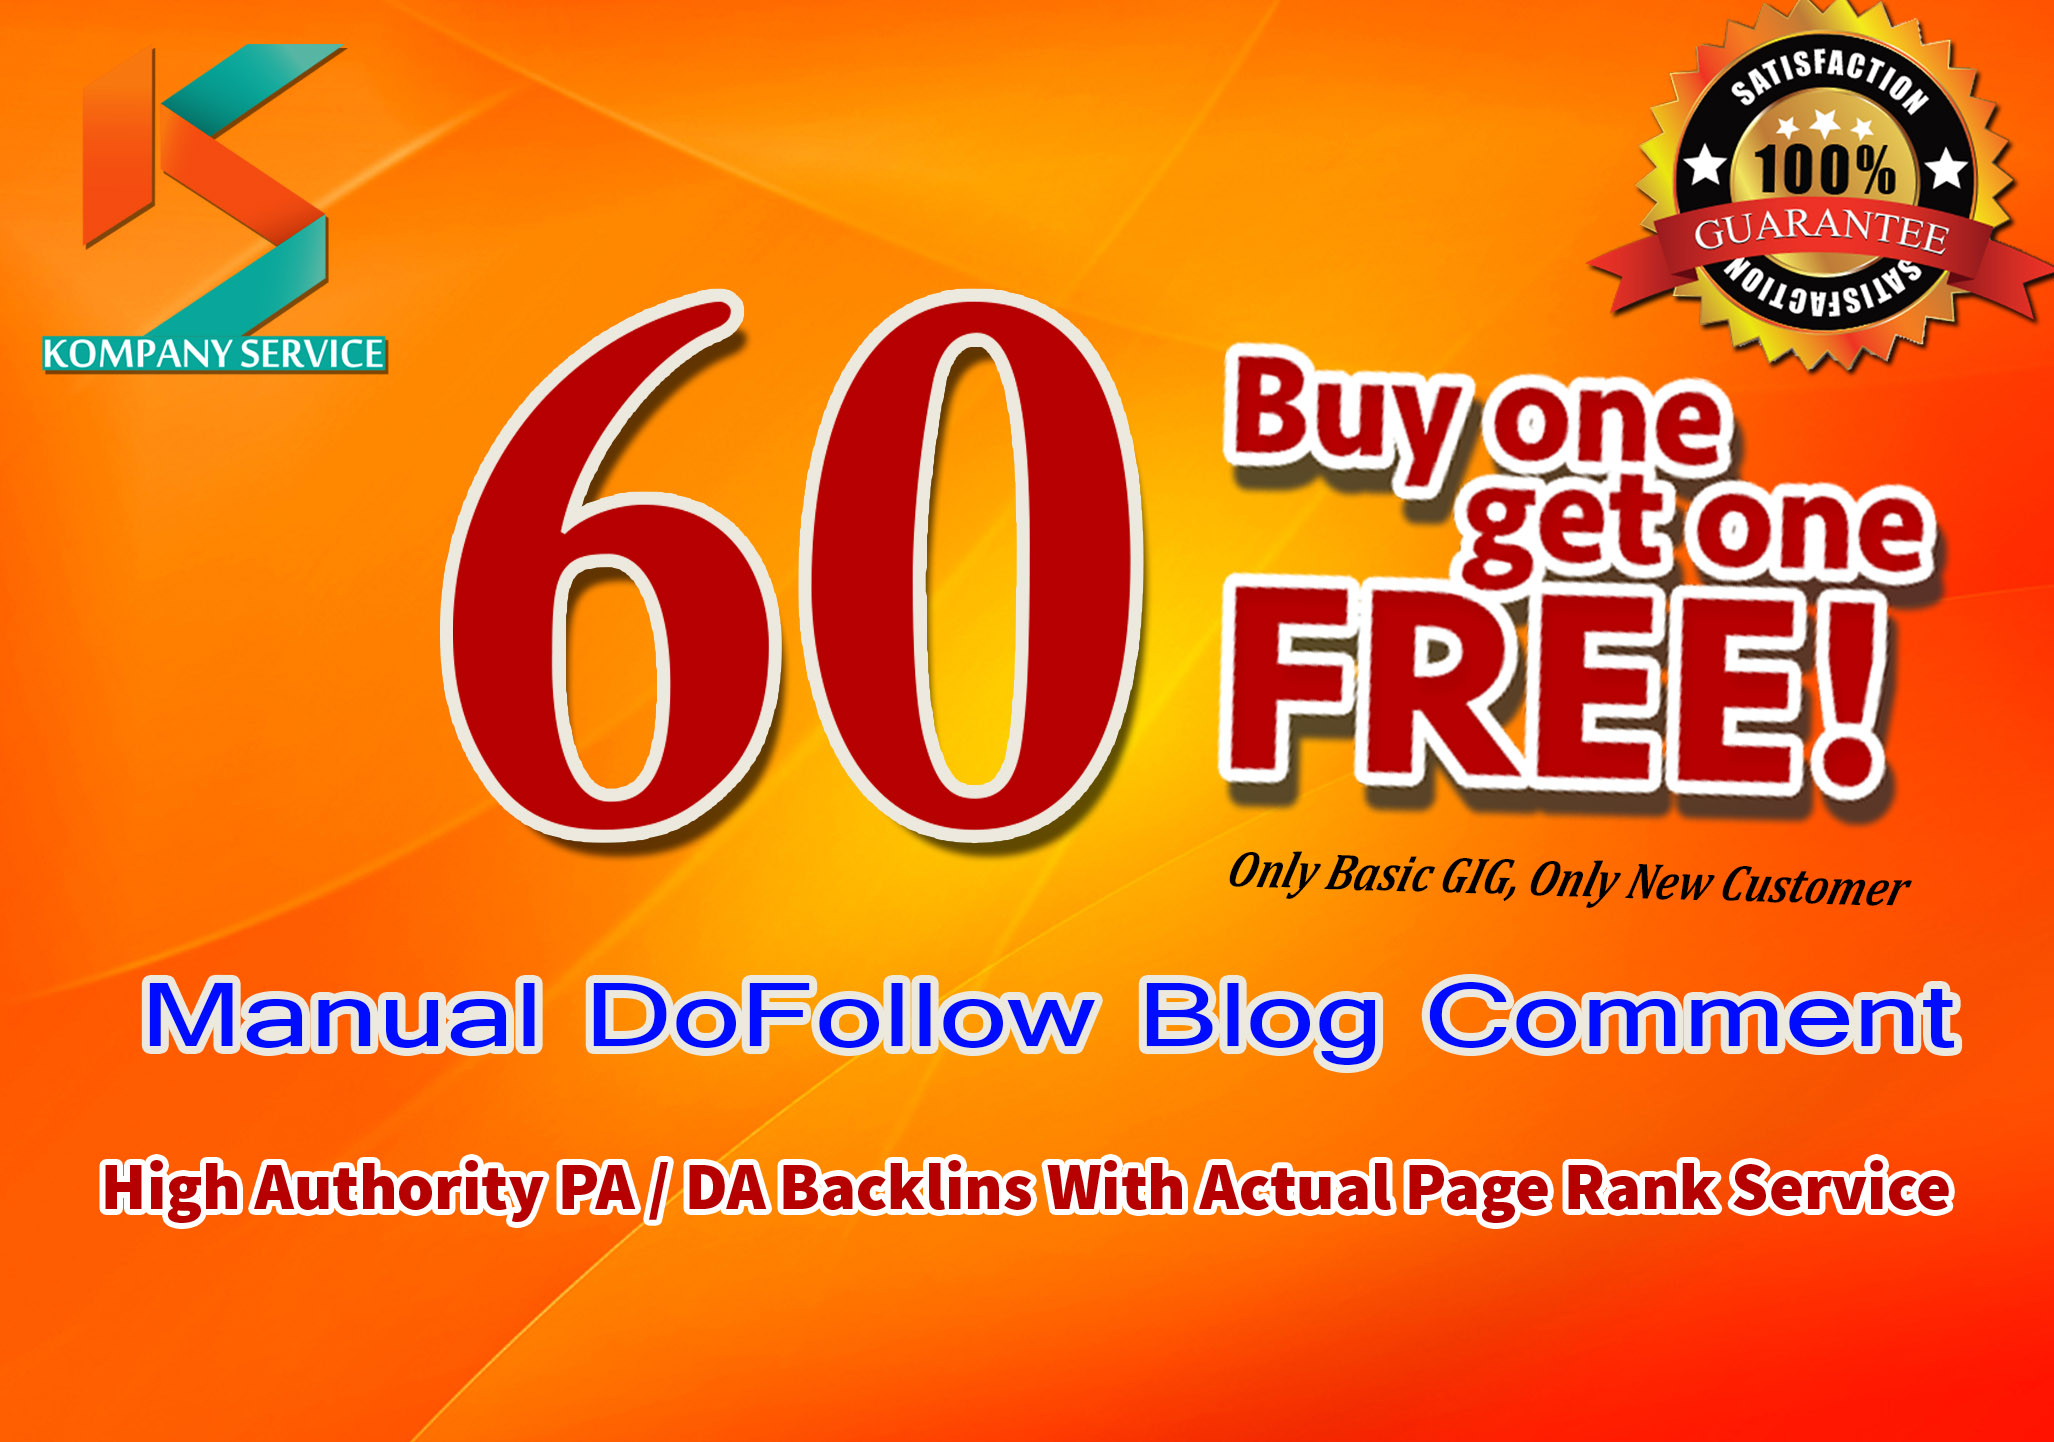 Provide 60 Manual do follow blog comments on high pa da links